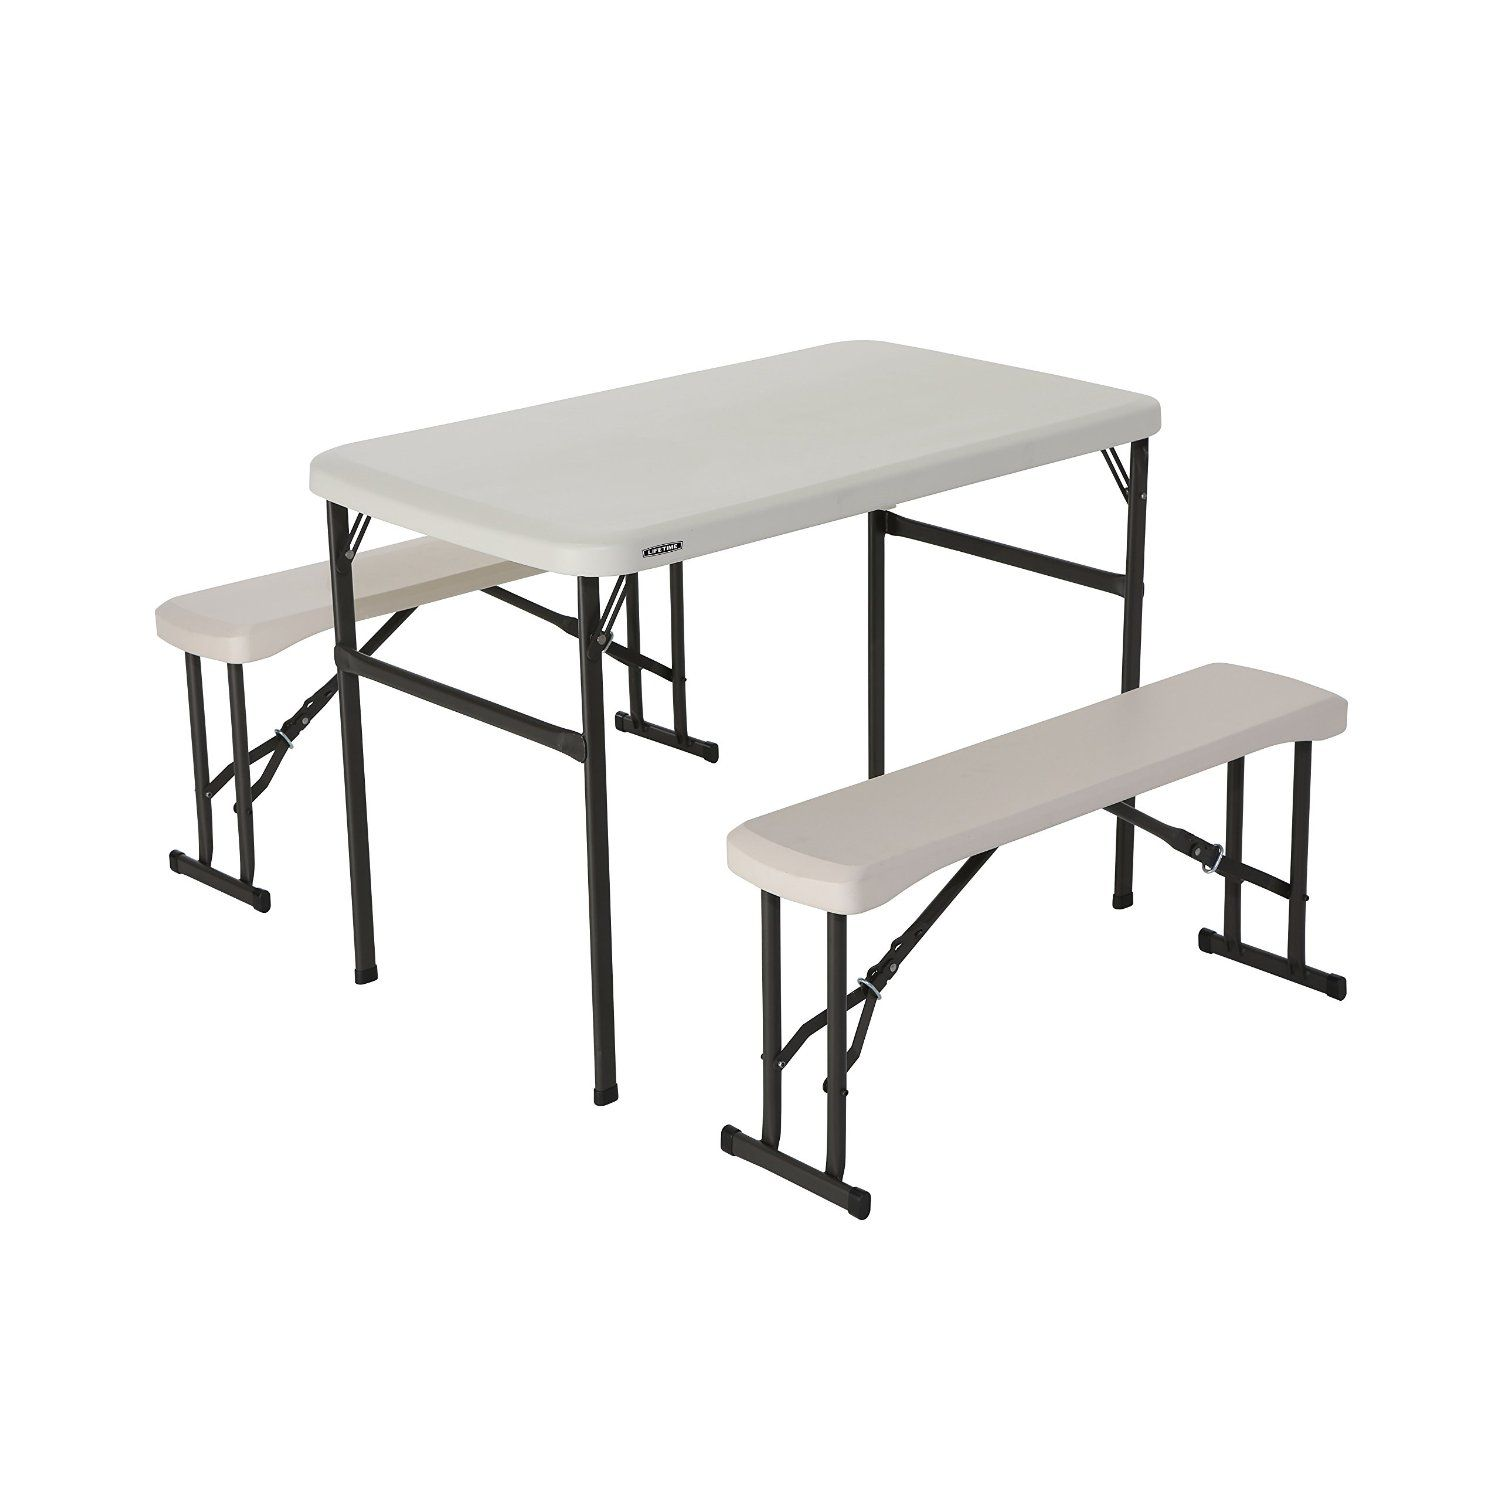 "Camping Furniture ""Lifetime Portable Folding Picnic Table"